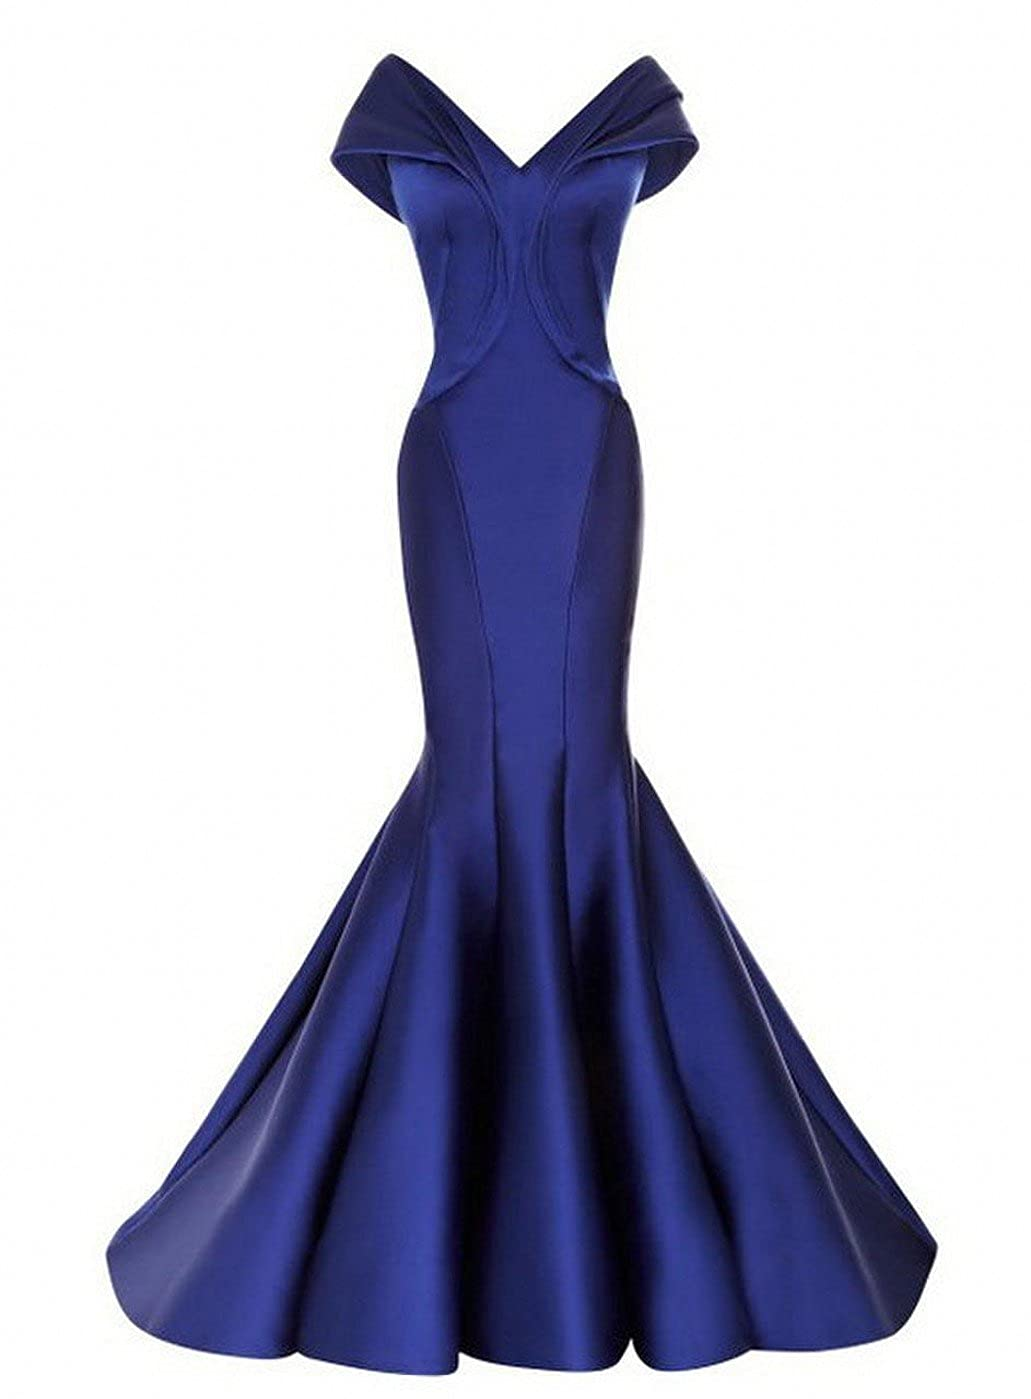 d6aea4fd74 Occasion : Prom,Homecoming,evening,party,Wedding,clubwear,dancing,Dating,club  wear,Birthday,Special Occasion, The Expedited shipping takes 3-4 working ...